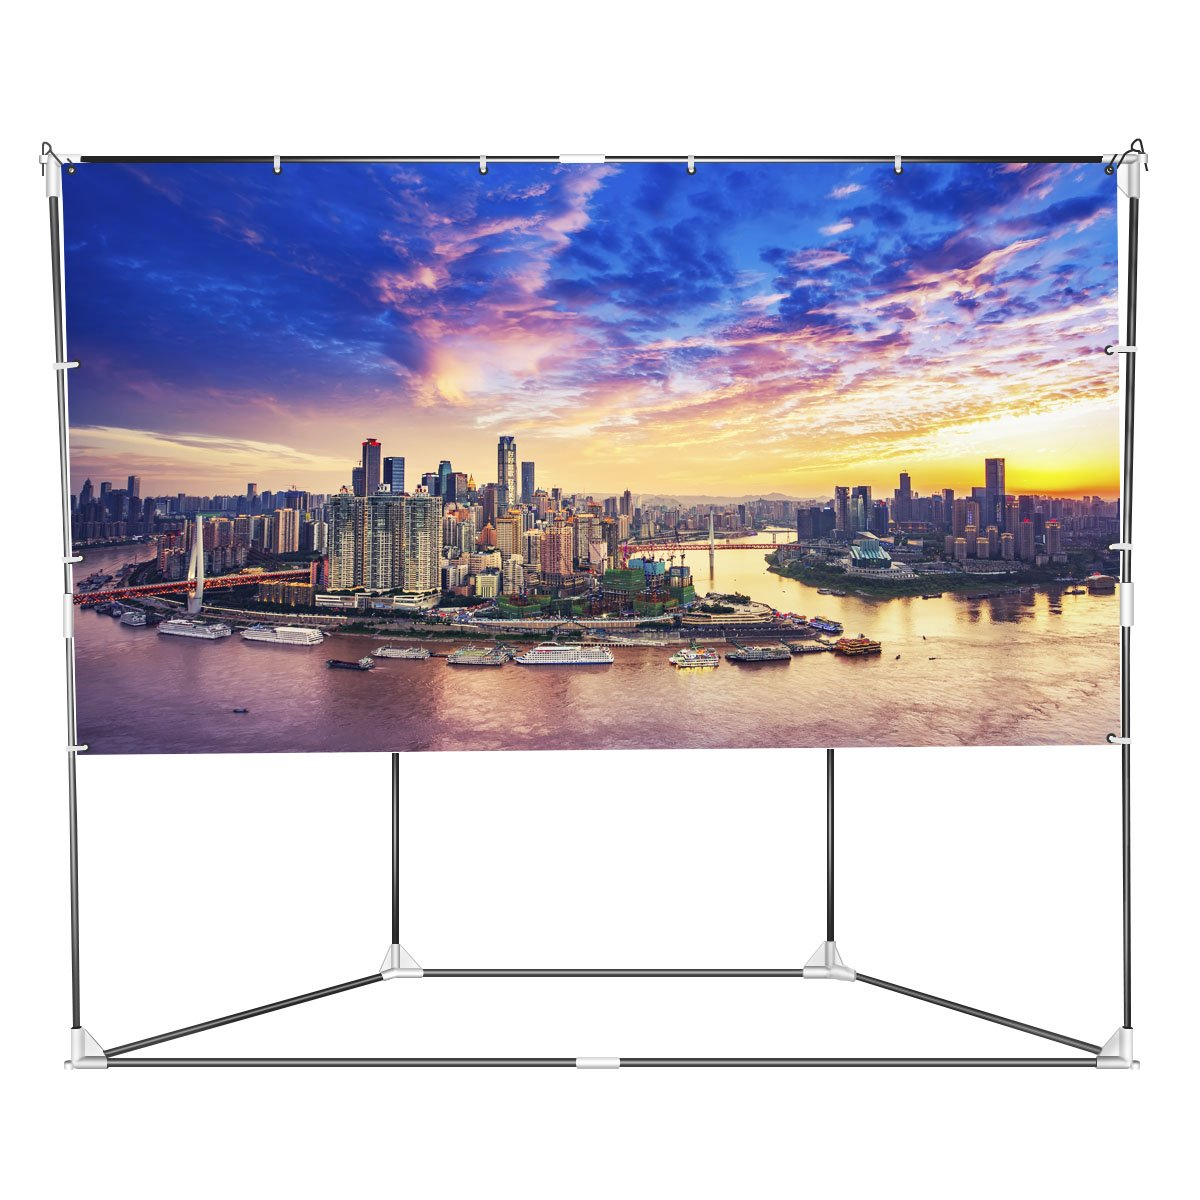 Auledio Outdoor Projector Screen, 100'' 16:9 Foldable Portable Projection Screen + Setup Stand + Transportable Bag Full Set for Camping and Recreational Events by Auledio